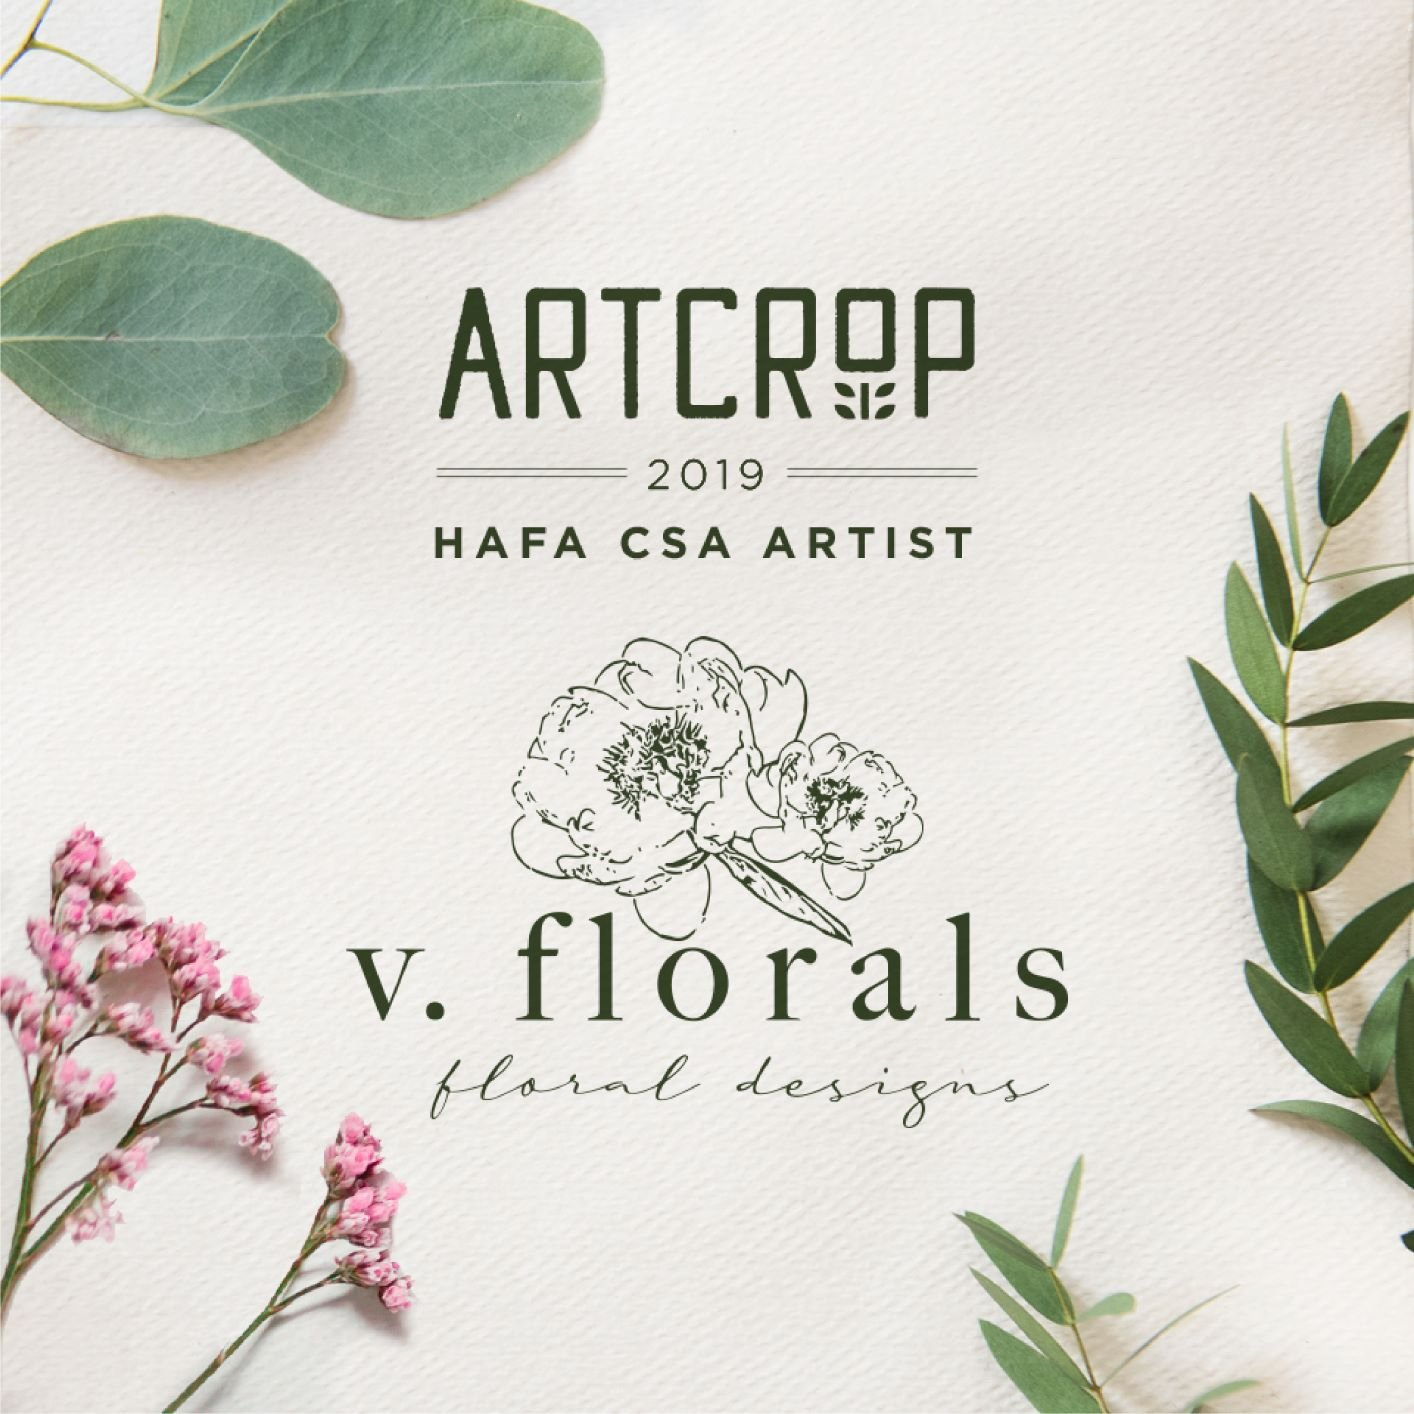 Previous Happening: ArtCrop: crafted by the hands of farmers and artists